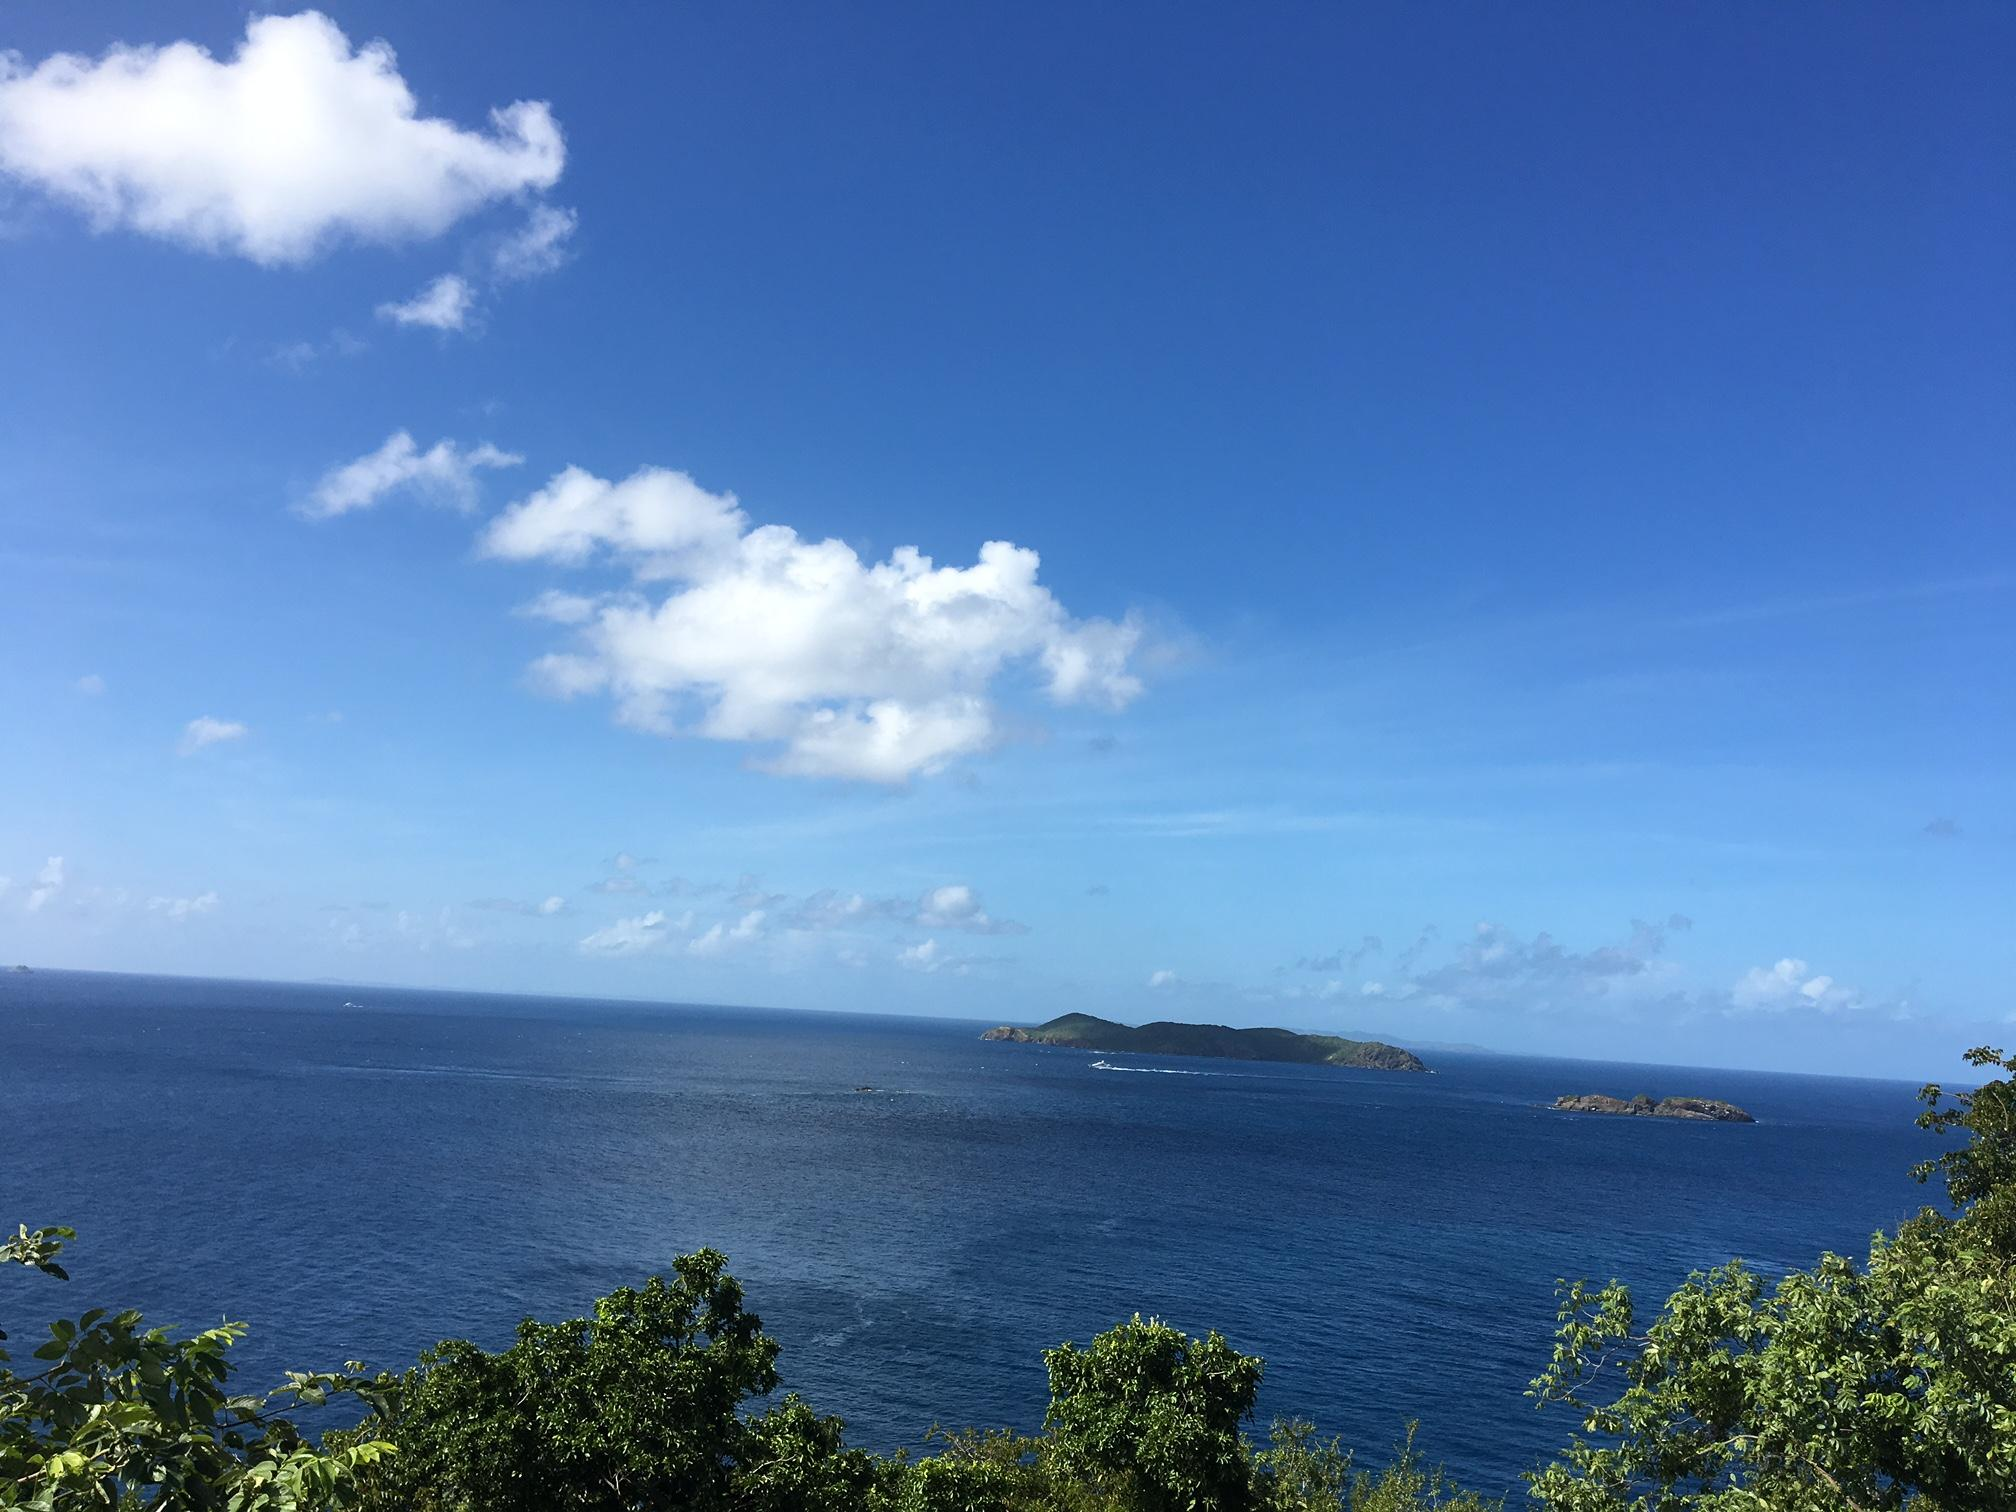 Land for Sale at 6-2 Botany Bay WE 6-2 Botany Bay WE St Thomas, Virgin Islands 00802 United States Virgin Islands